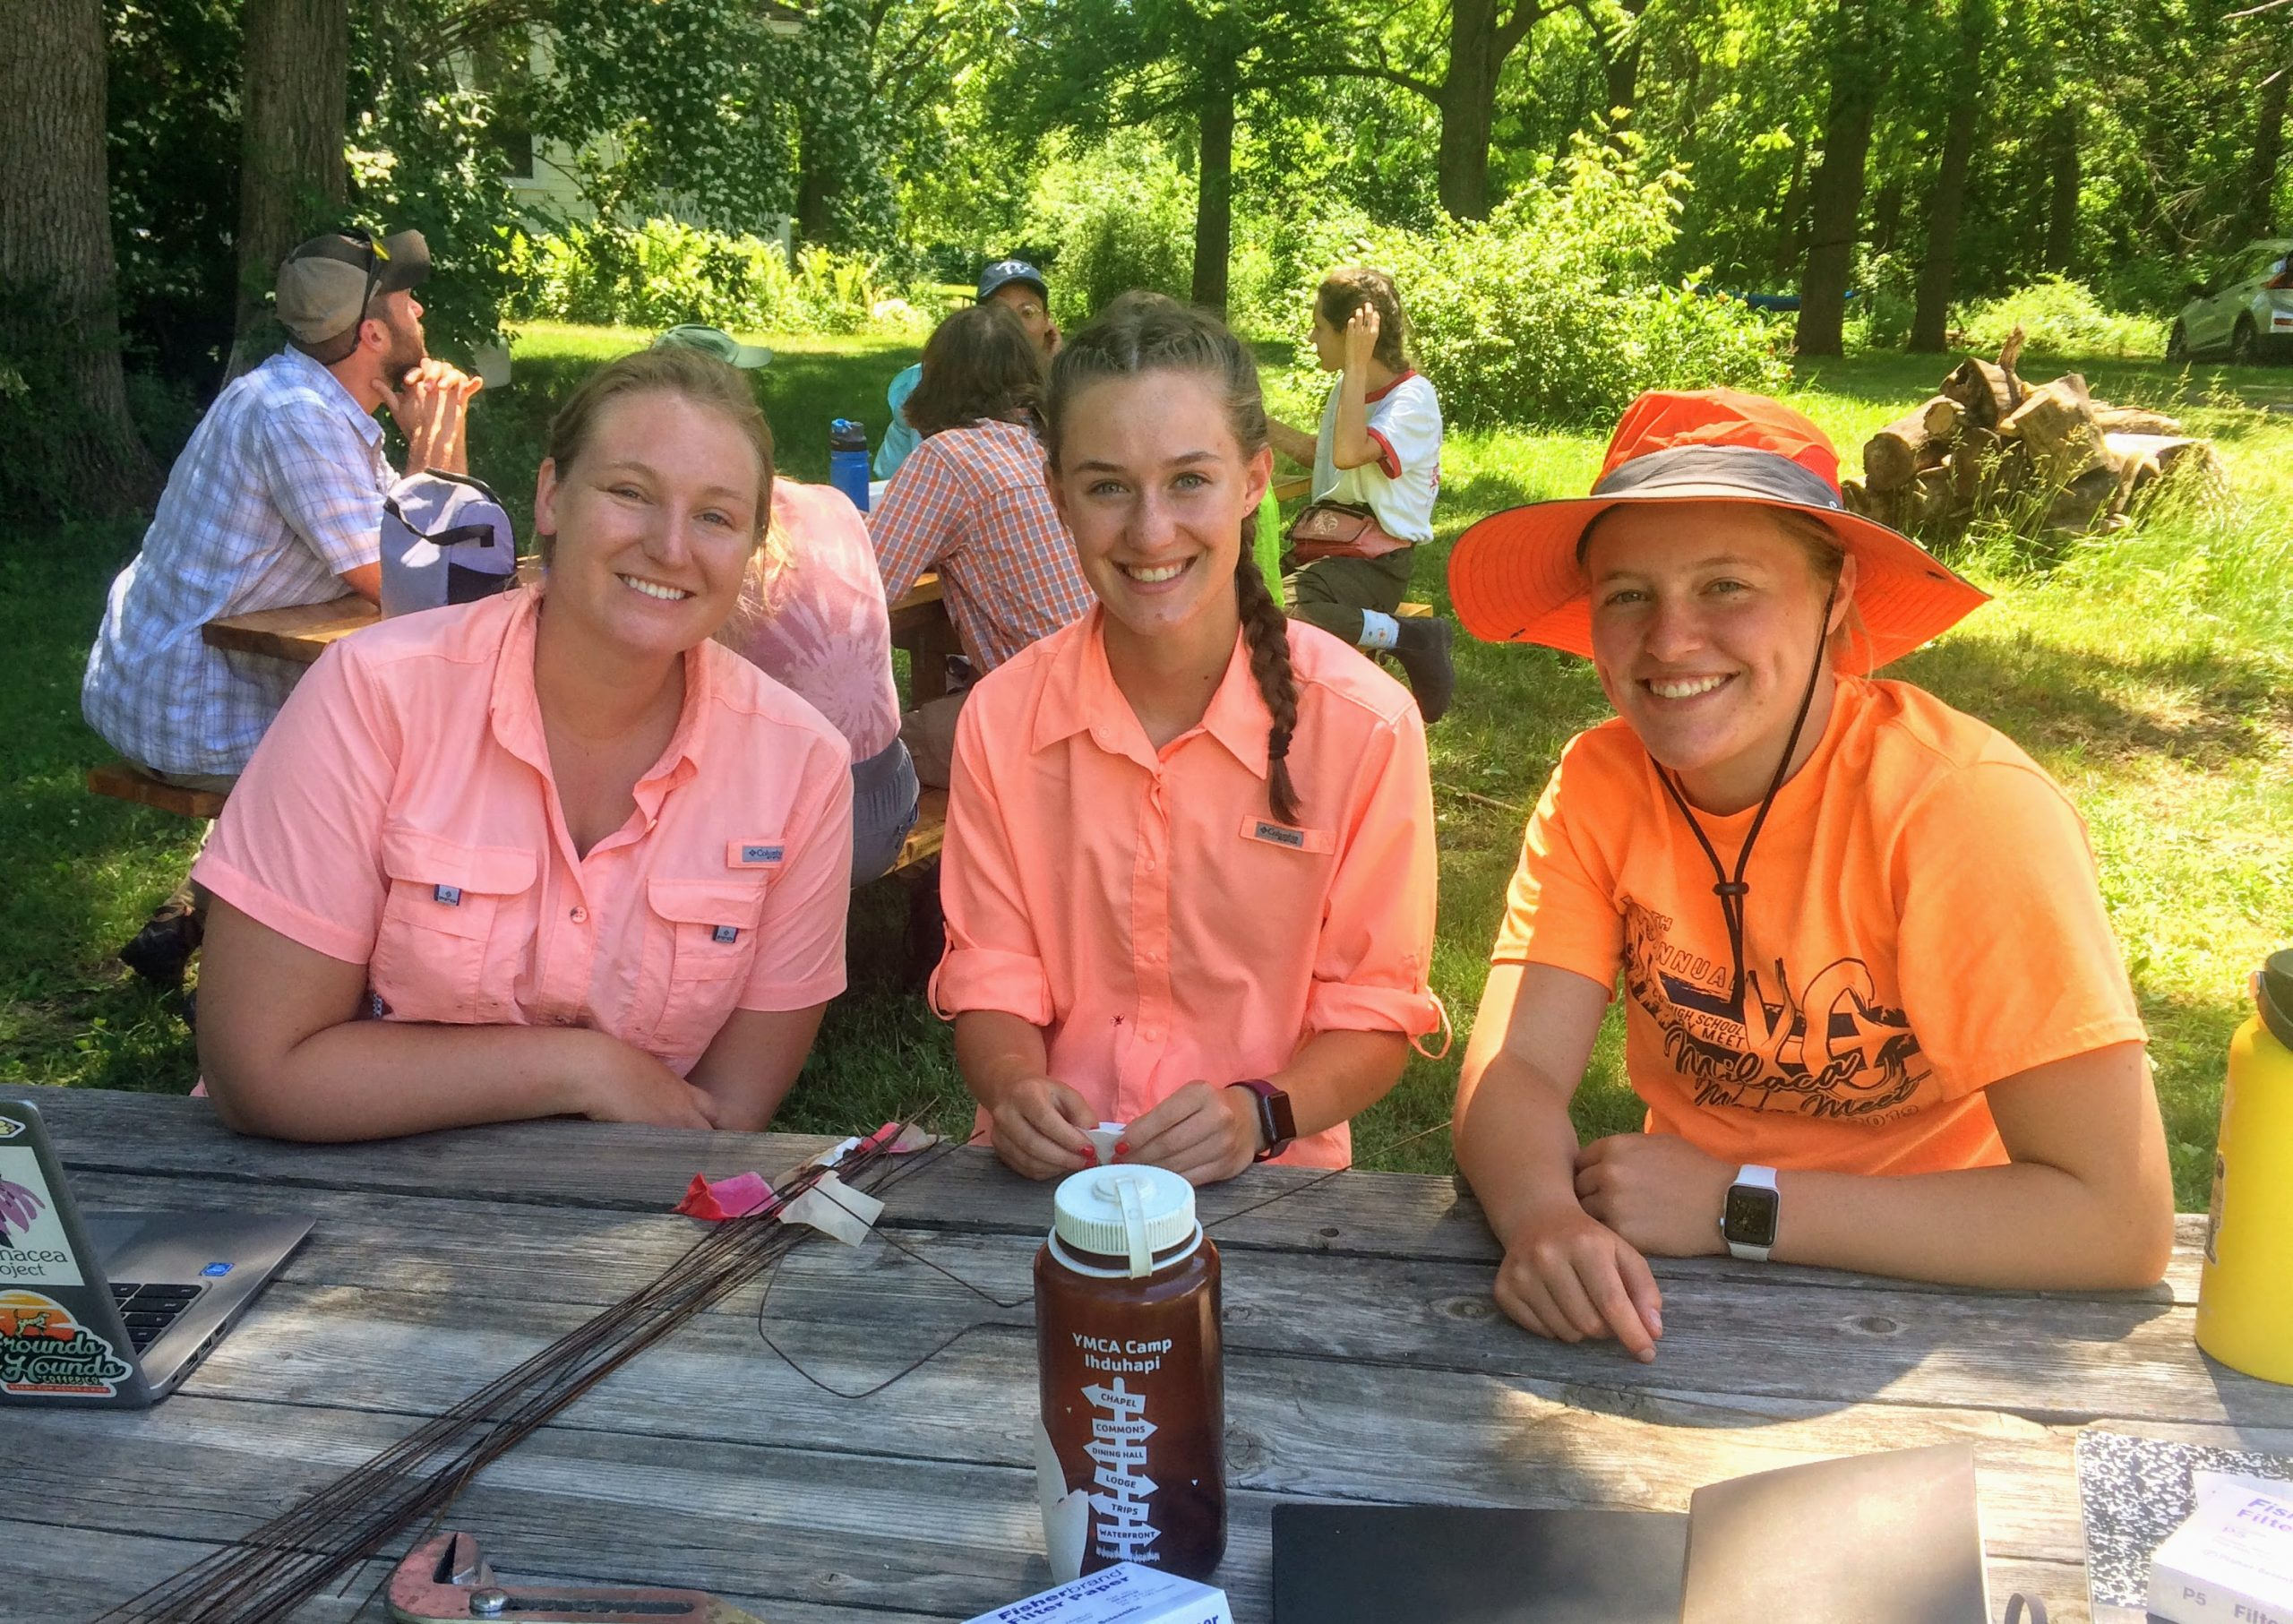 Team Dust! Alex, Emma, and Kennedy wearing sunset colored shirts at the picnic table.